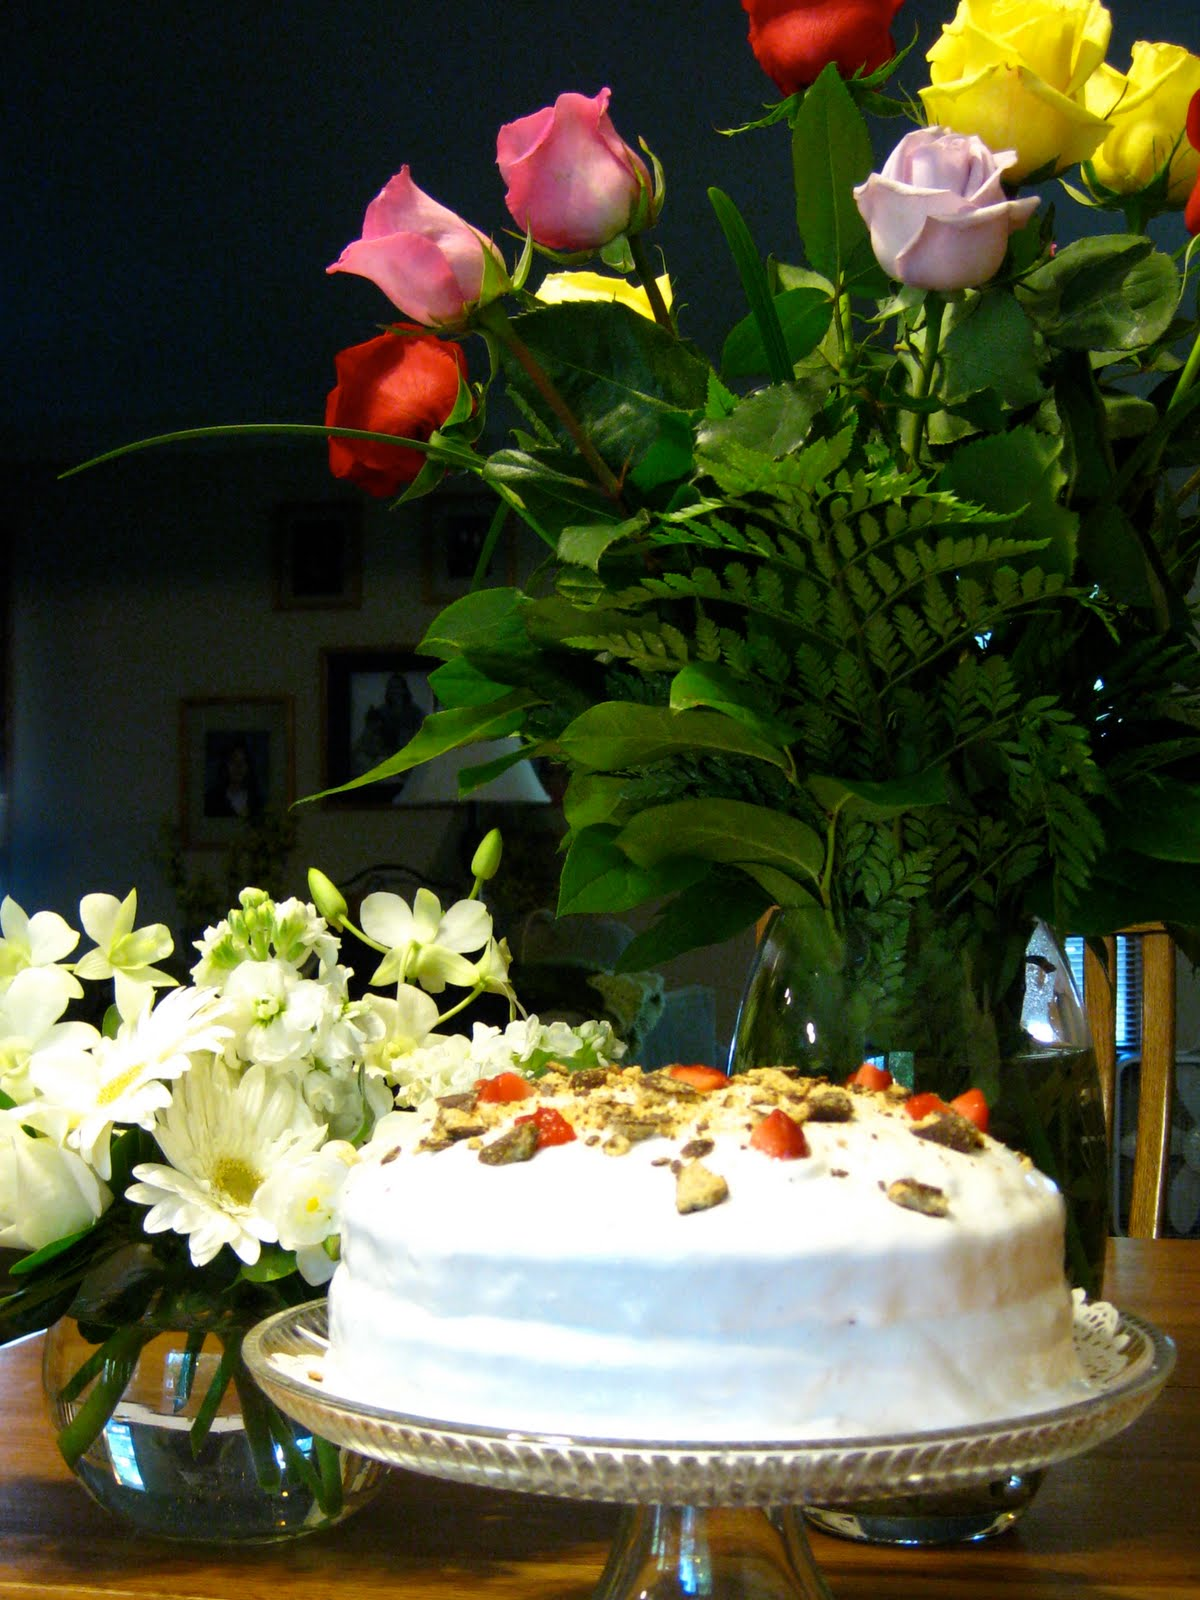 Coffeebeans dailies my birthday flowers and cake my birthday flowers and cake izmirmasajfo